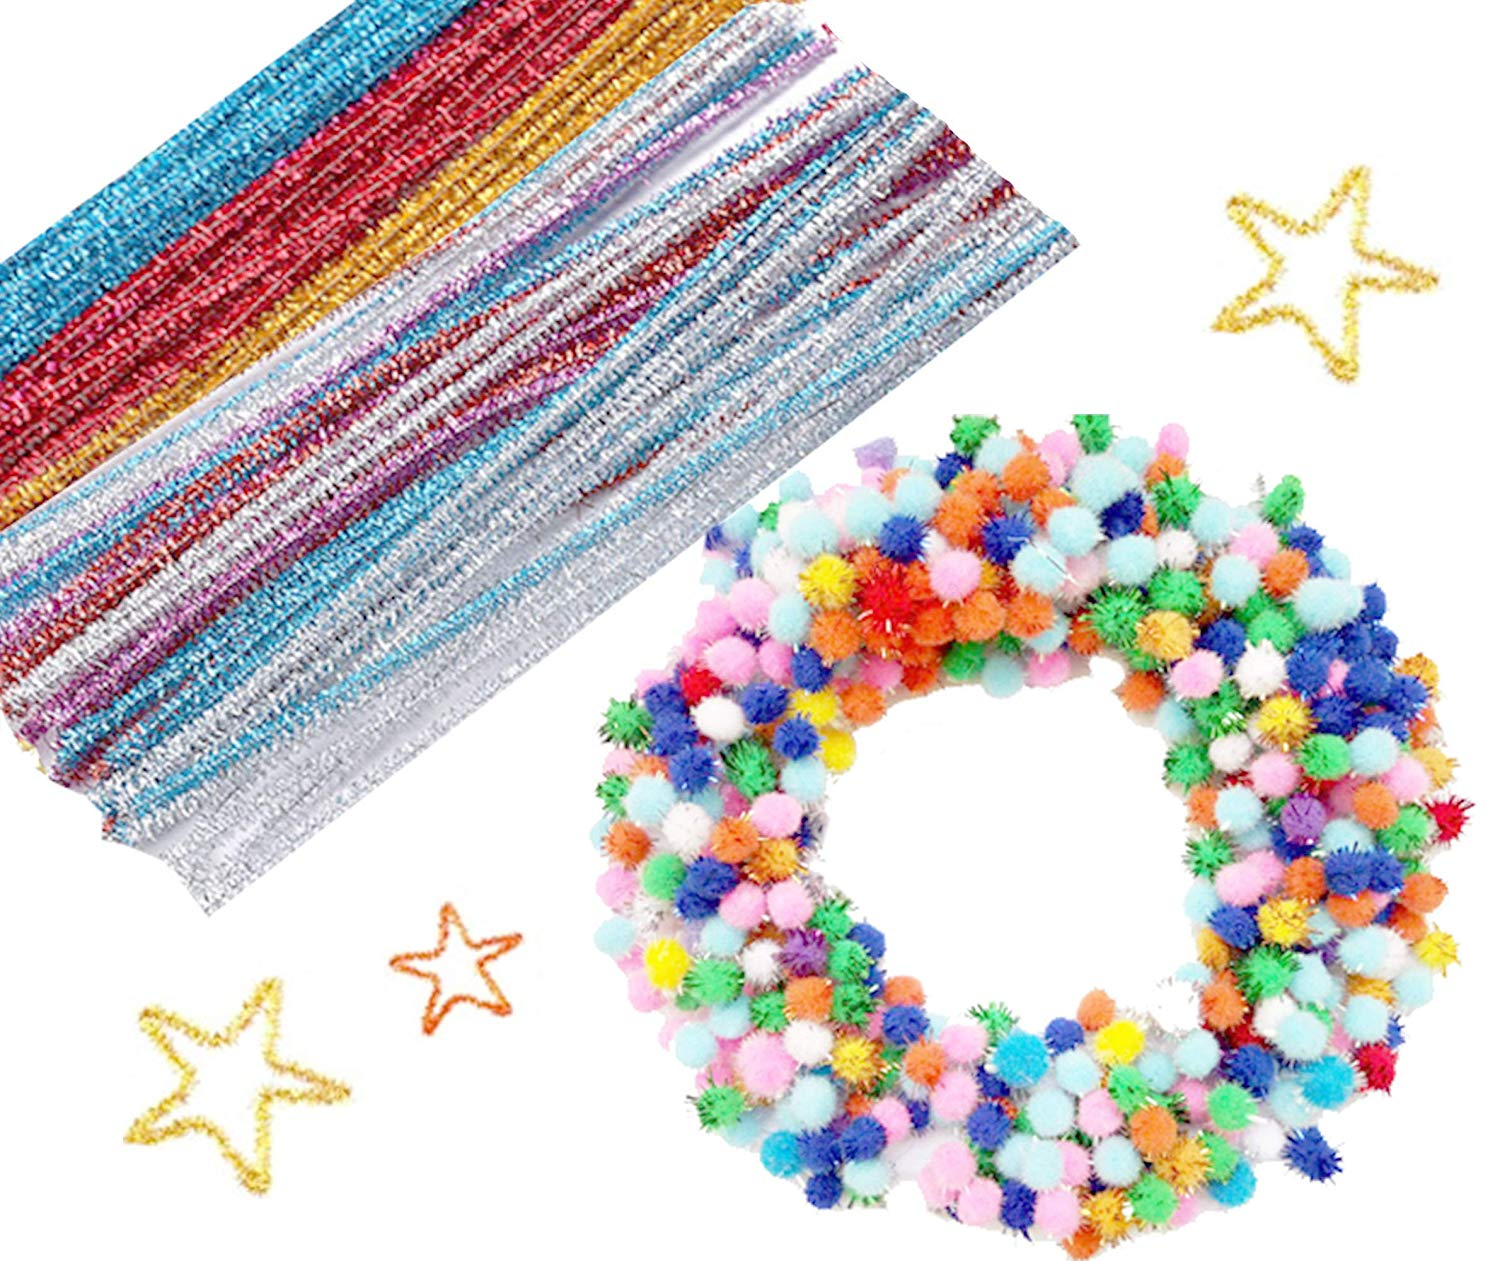 TBUY Pipe Cleaners Set Including 100 Pcs Glitter Chenille Stems and 1000 Pcs Pom Poms for Children DIY Craft Art Decorations